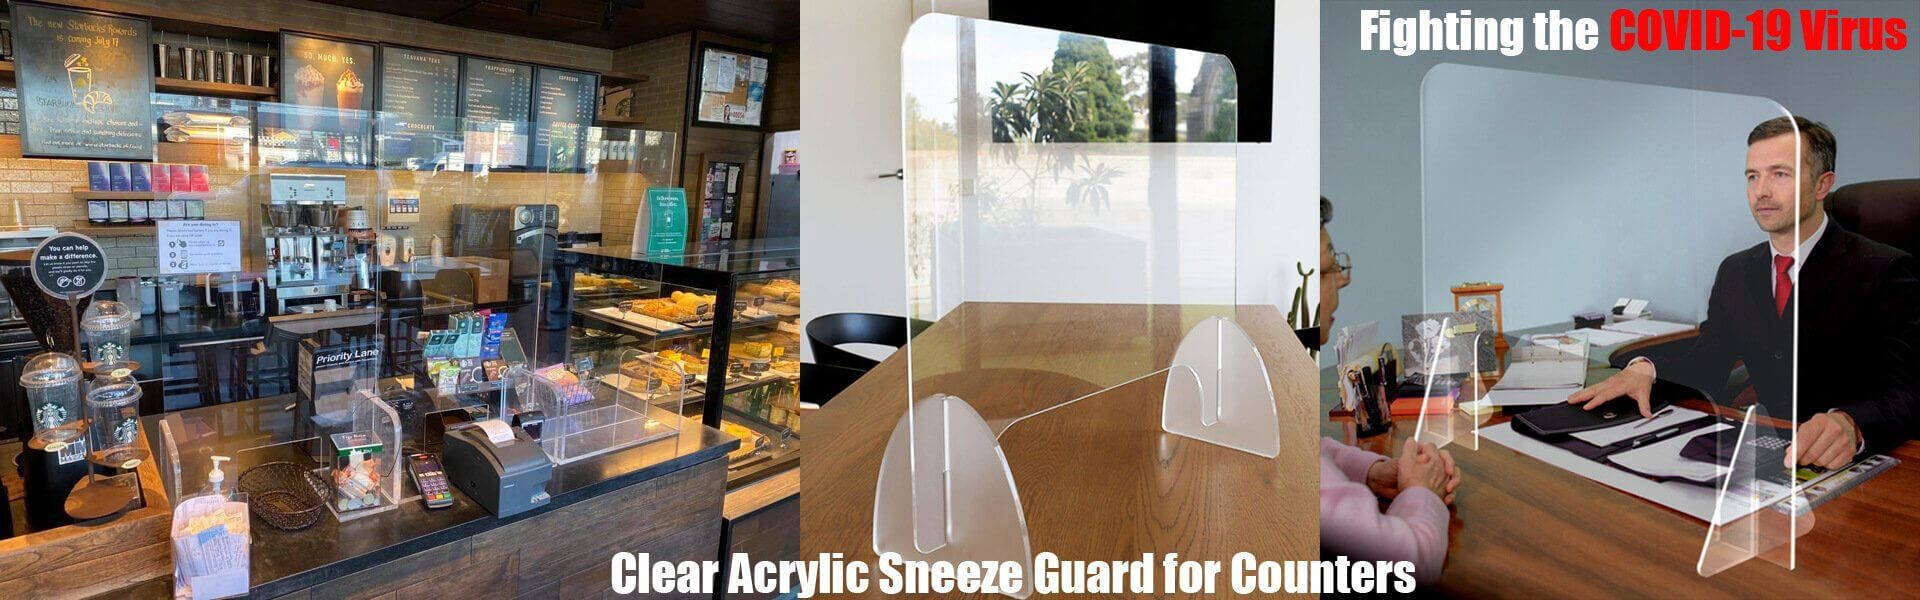 Acrylic Sneeze Guard/Shield, Cough Shields, Protective Guard, Safety Shields, Social distancing, Nail Salon Viral Protection